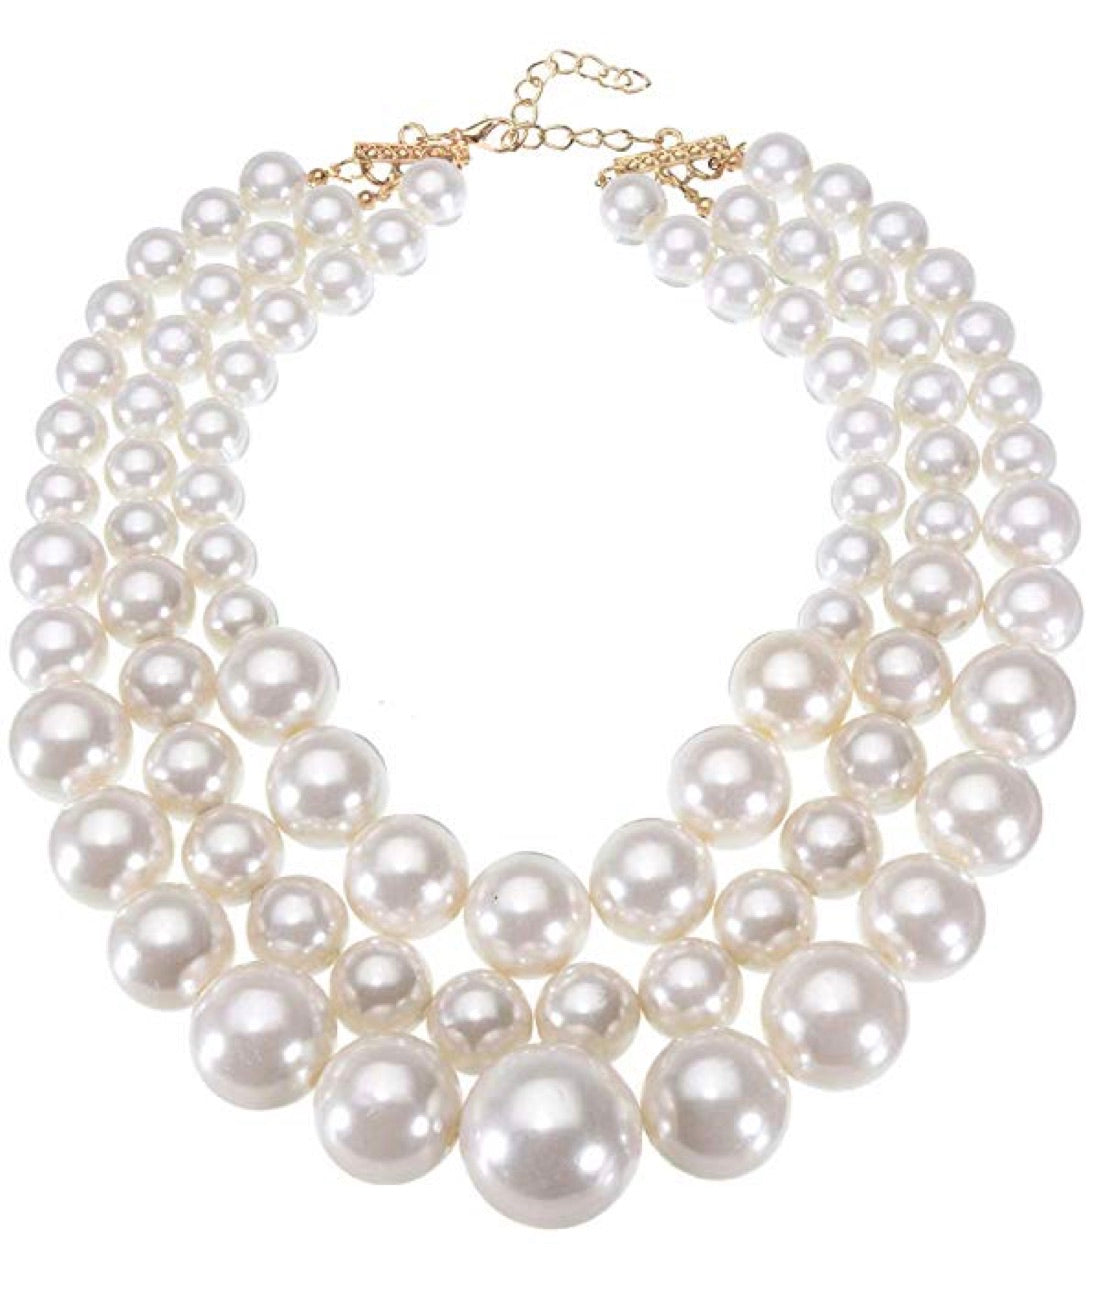 18k Gold Multi Pearl Necklace